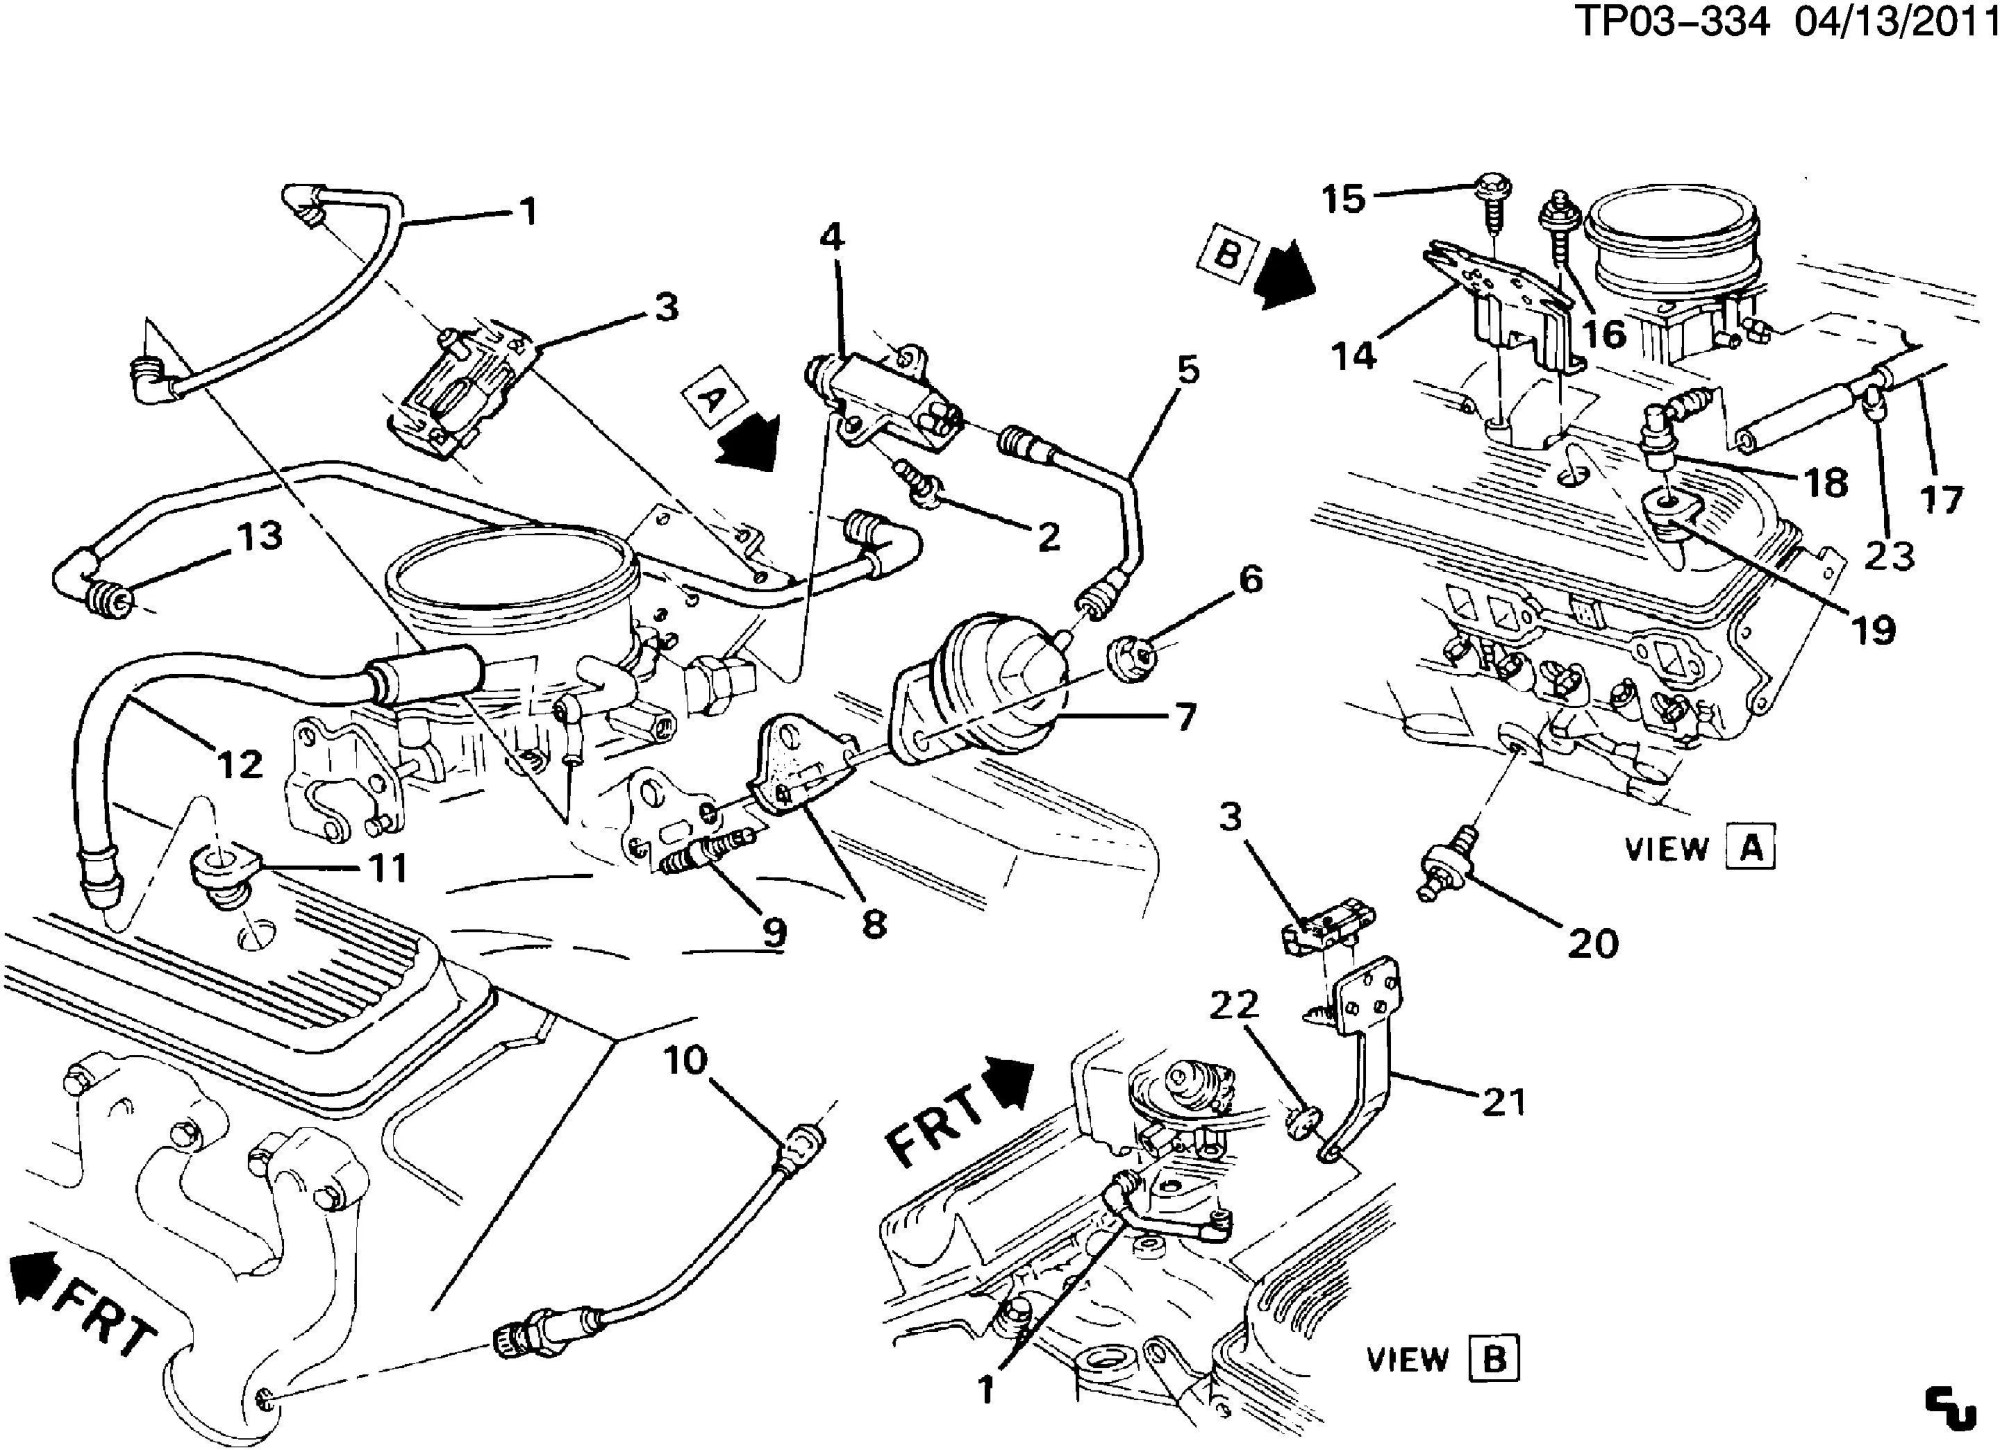 hight resolution of chevy 5 7 engine diagram wiring diagram schematic 5 7 350 chevy engine diagram